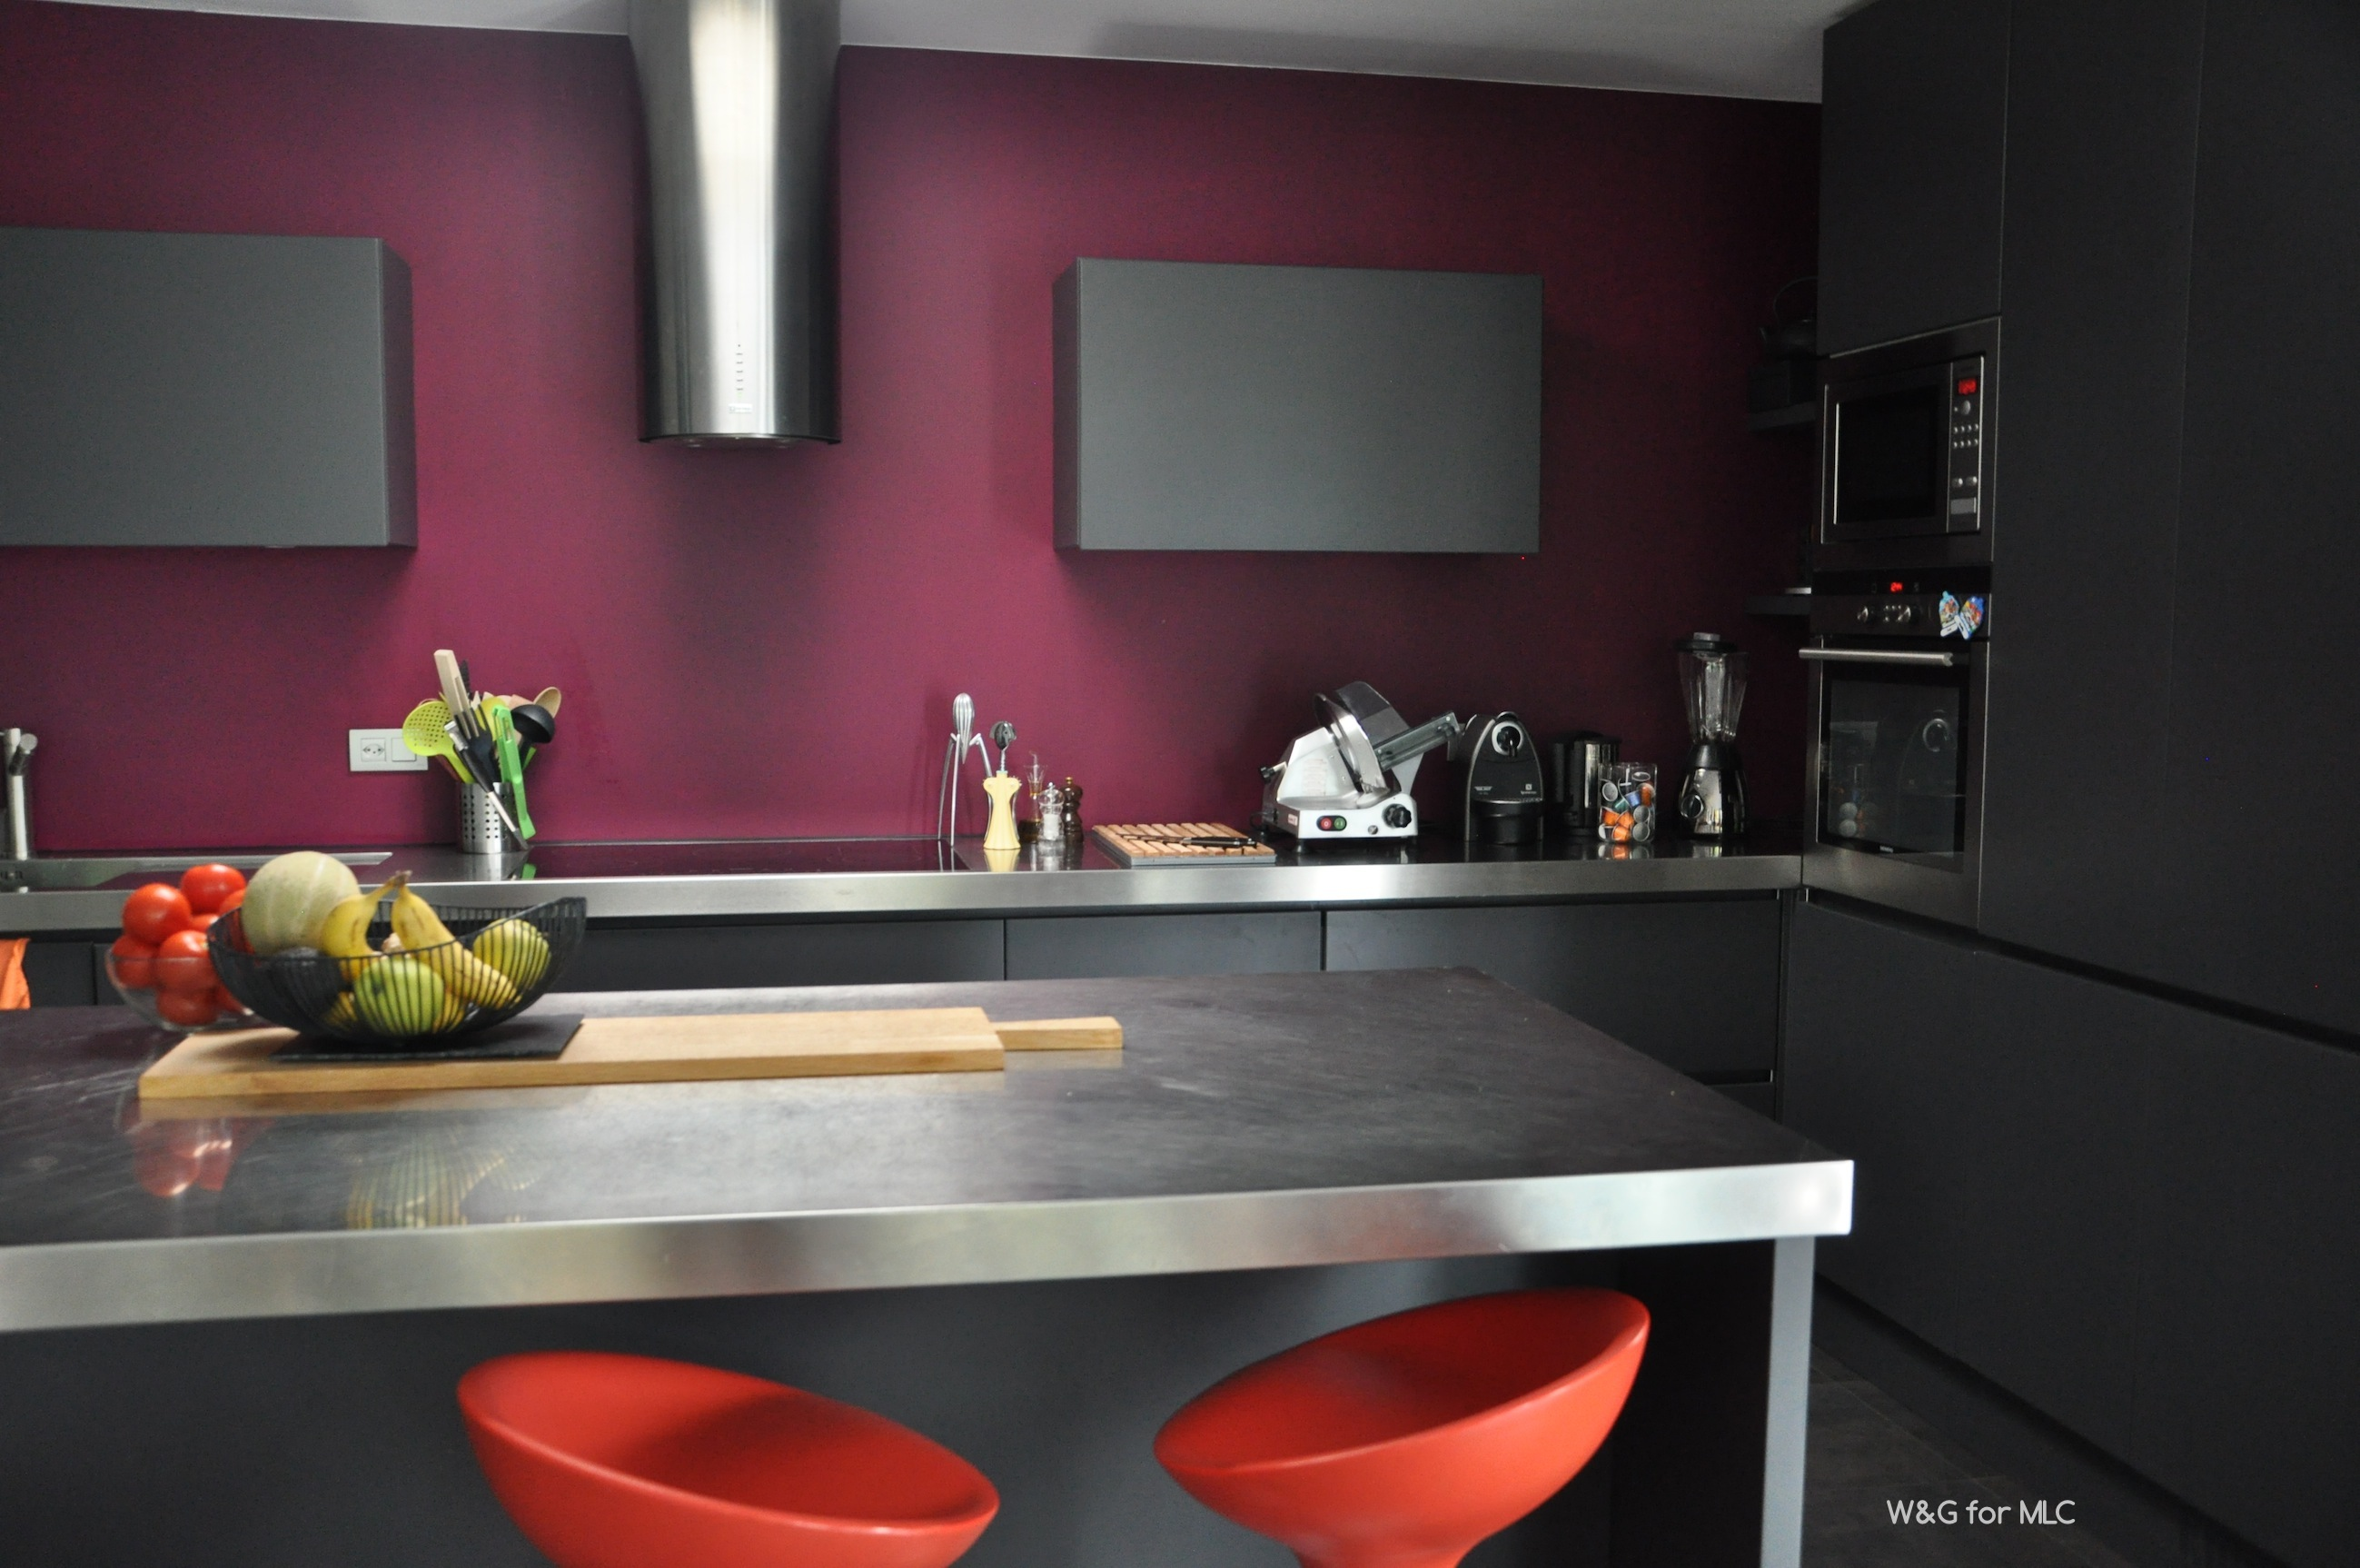 Cuisine anthracite sur fond fushia archives le blog d co for Deco de cuisine design